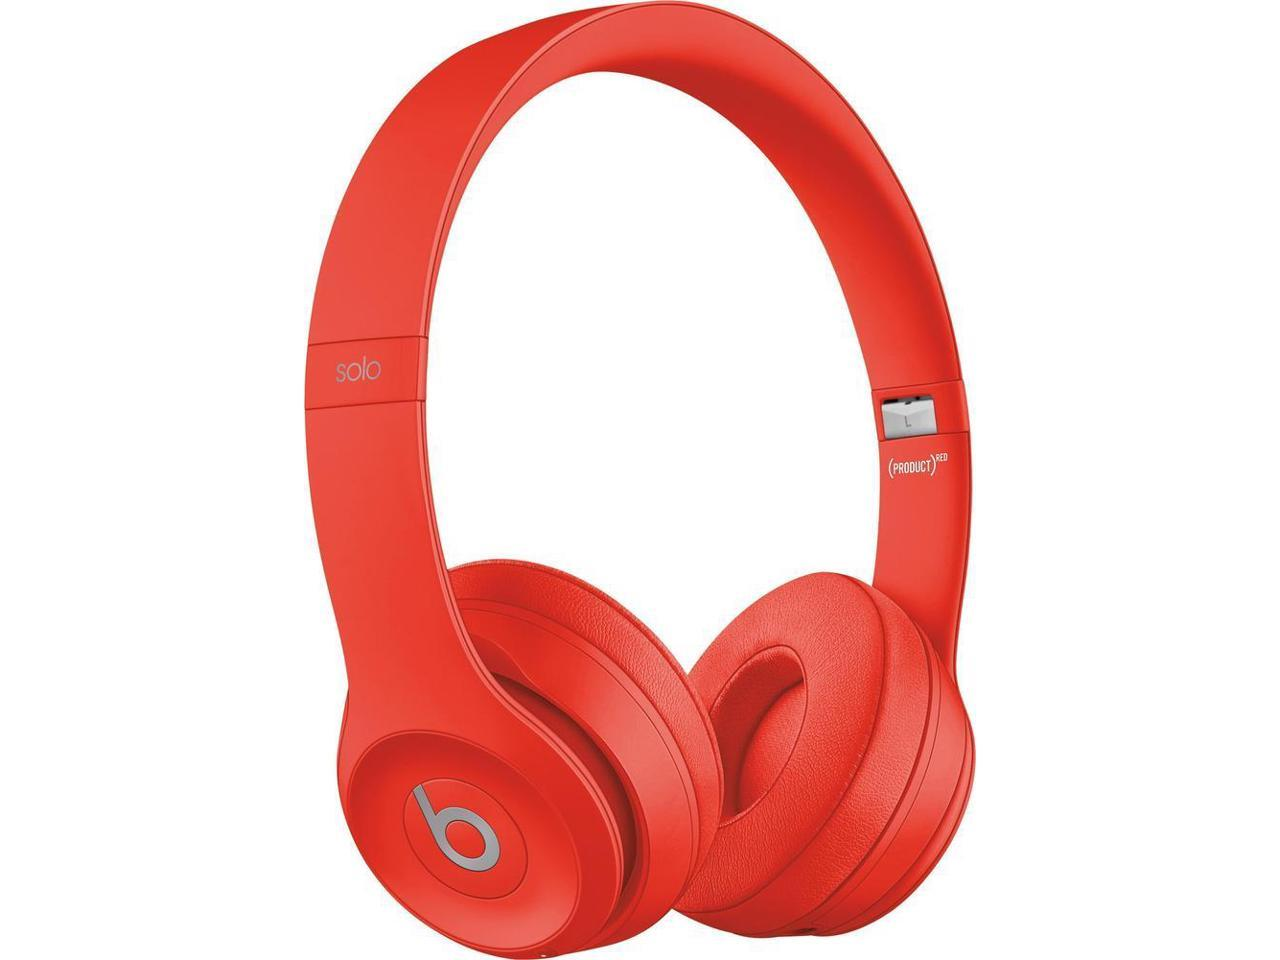 Beats by Dr. Dre - Beats Solo3 Wireless Headphones - (PRODUCT) RED